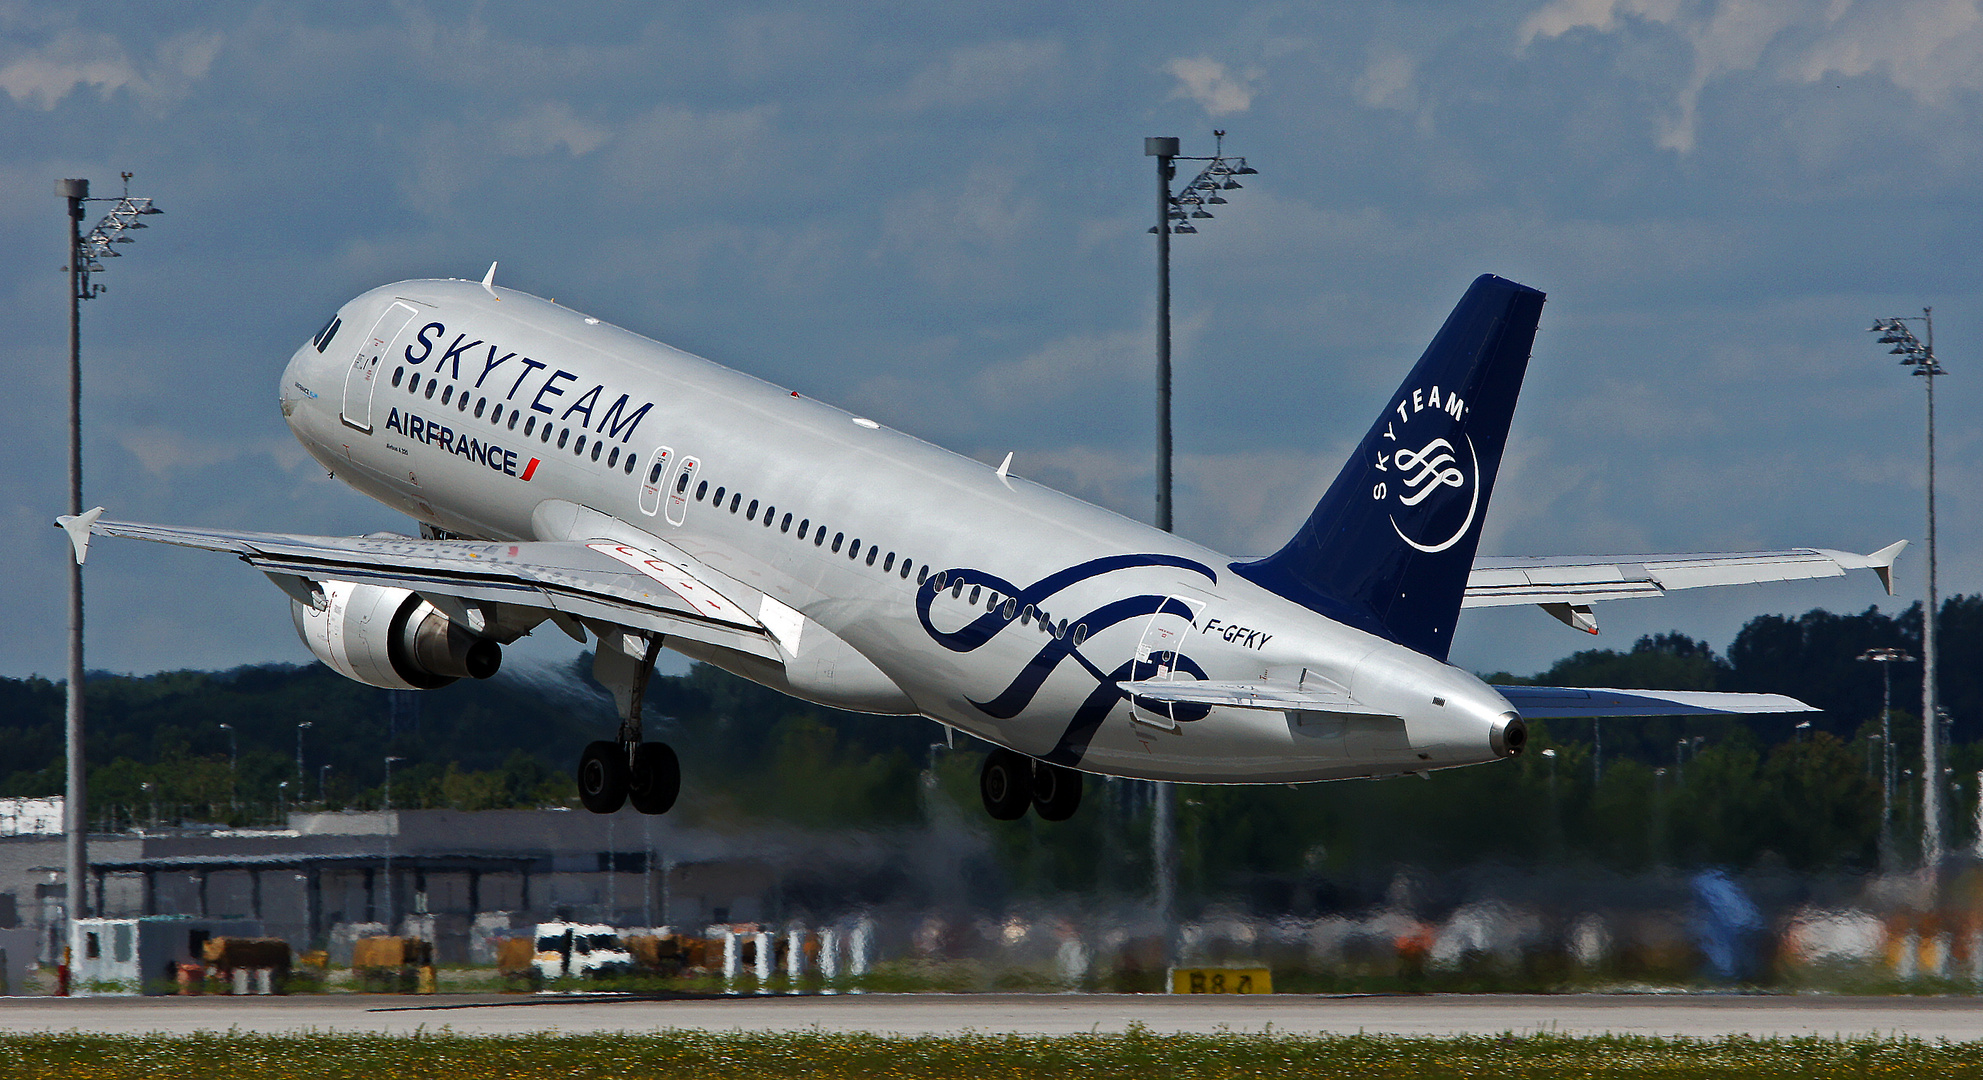 AIR FRANCE / SKYTEAM